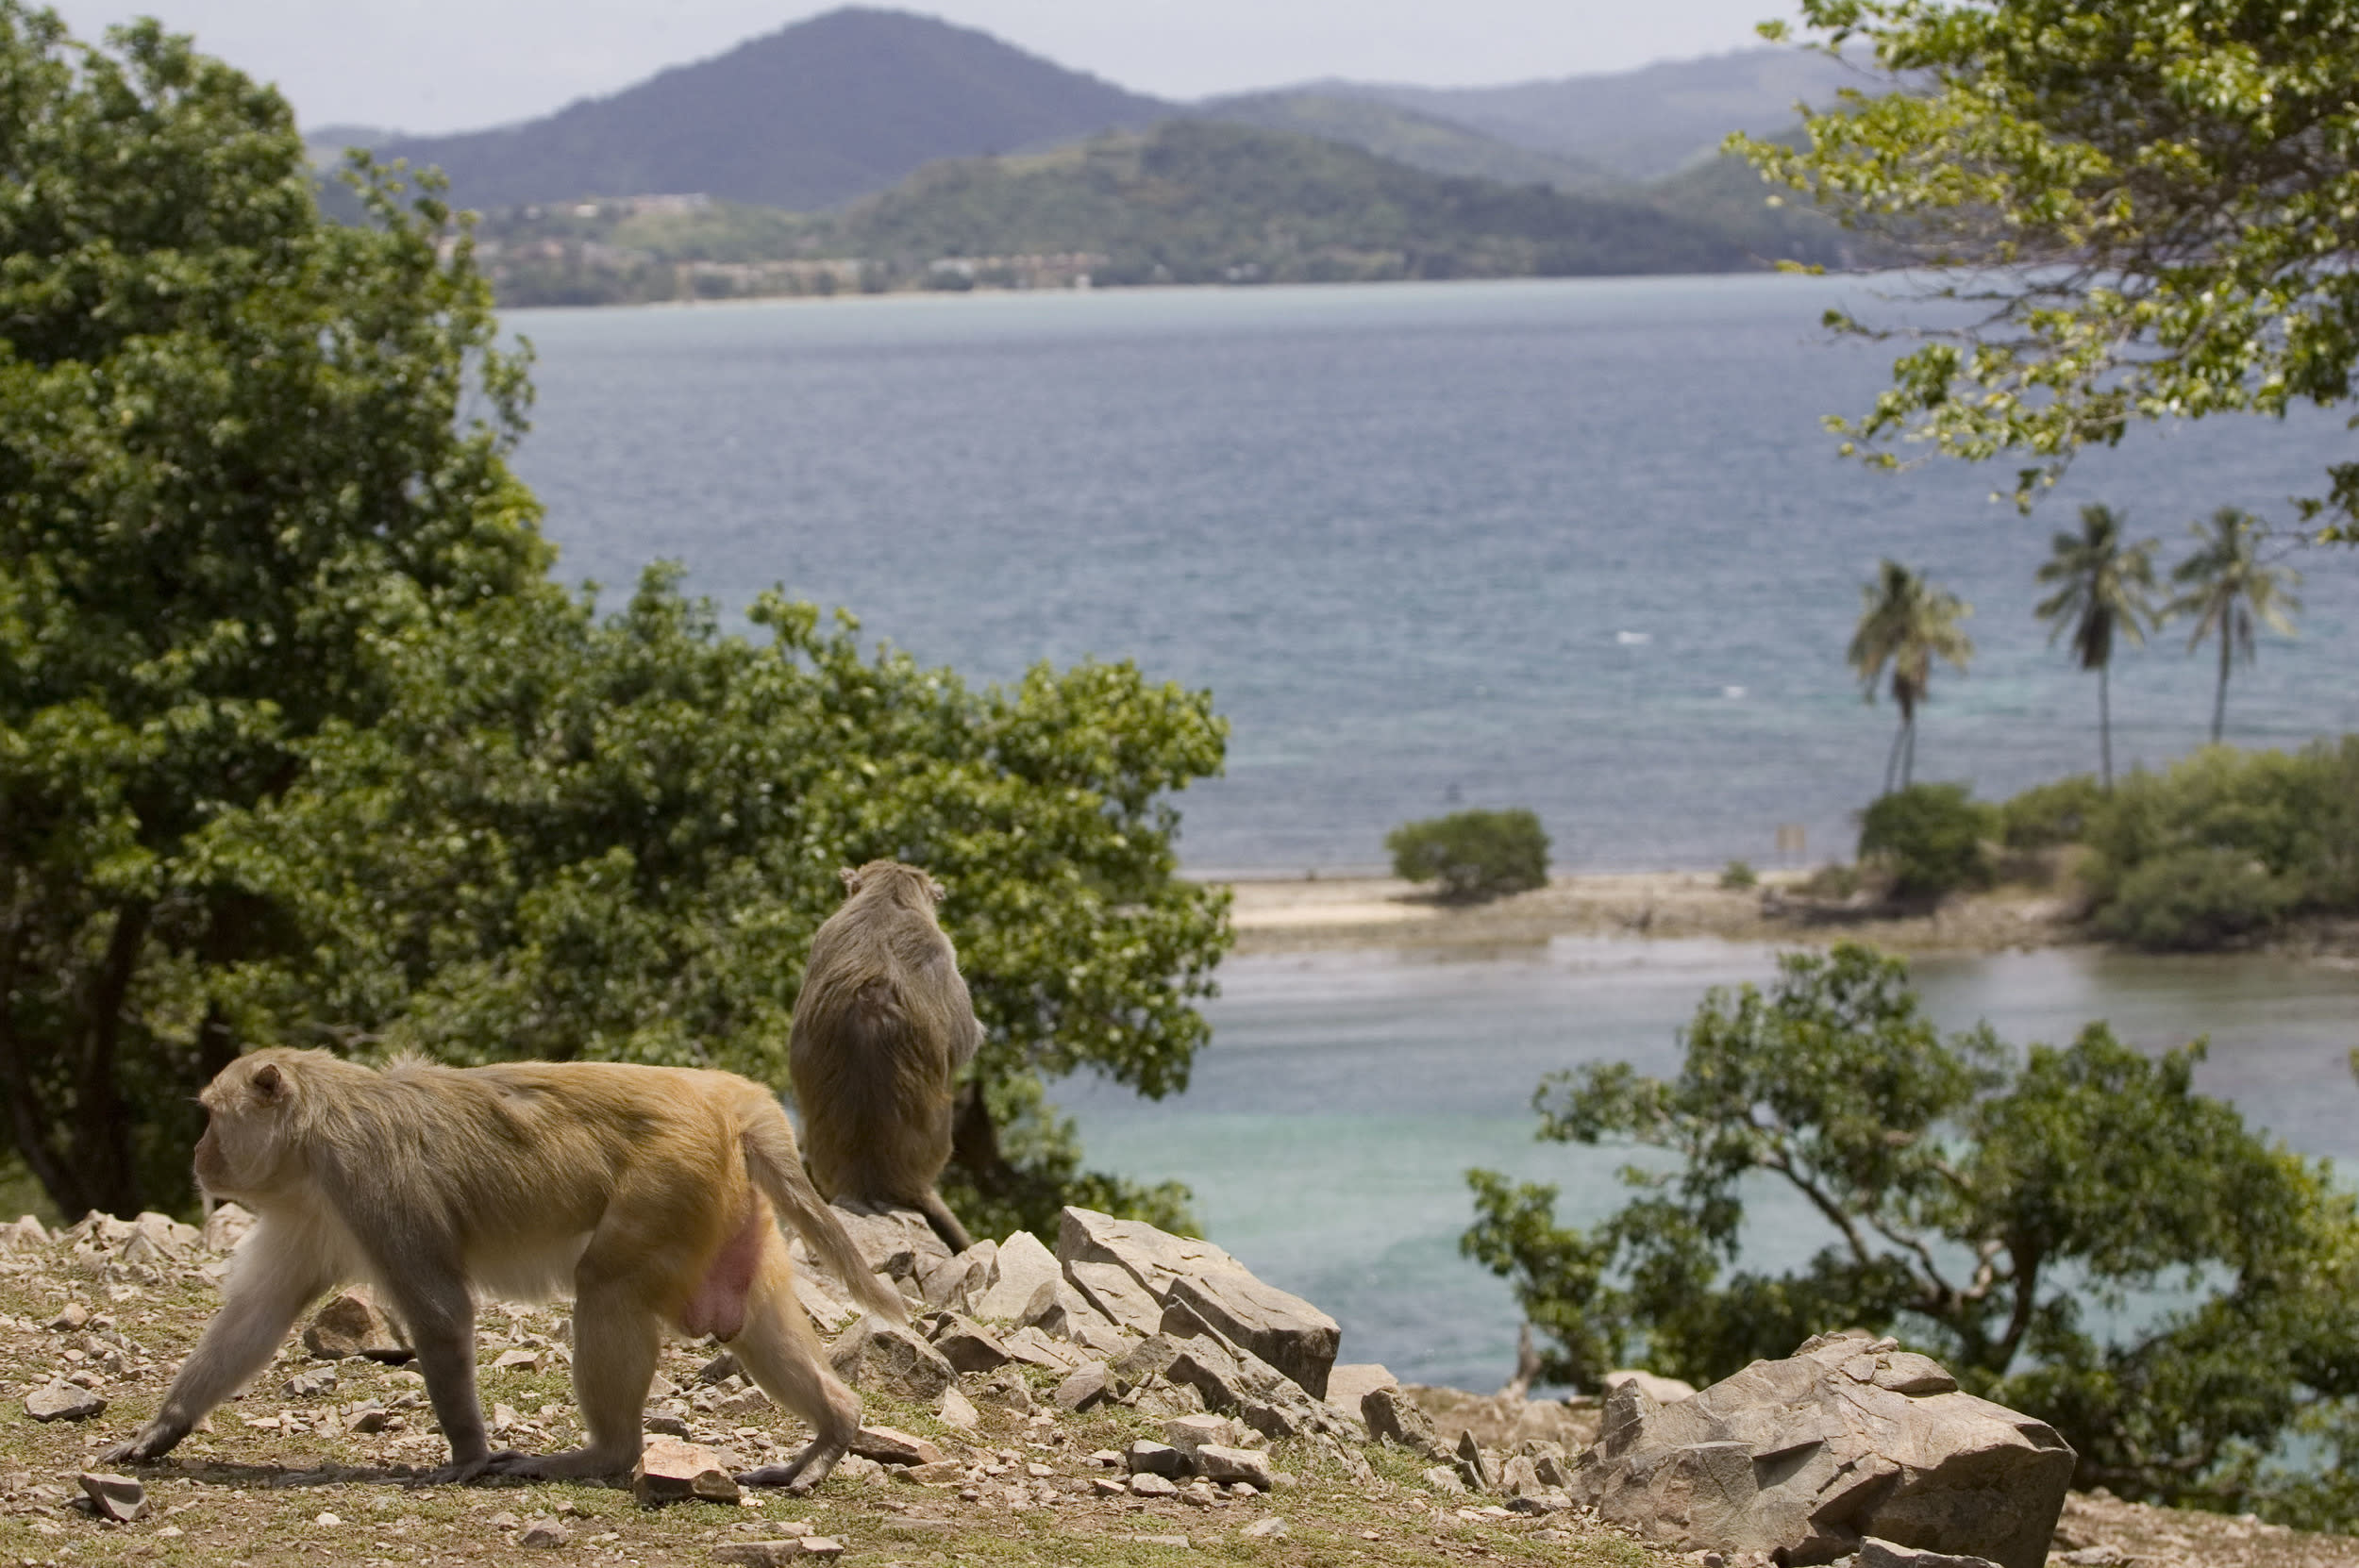 The rhesus macaques on Cayo Santiago, also known as Monkey Island, off the eastern coast of Puerto Rico, were introduced in 1938 for scientific research. Around 1,200 free-roaming monkeys can be found on the small island and while it is not open to tourists, you can get an up close view of the animals from the water.